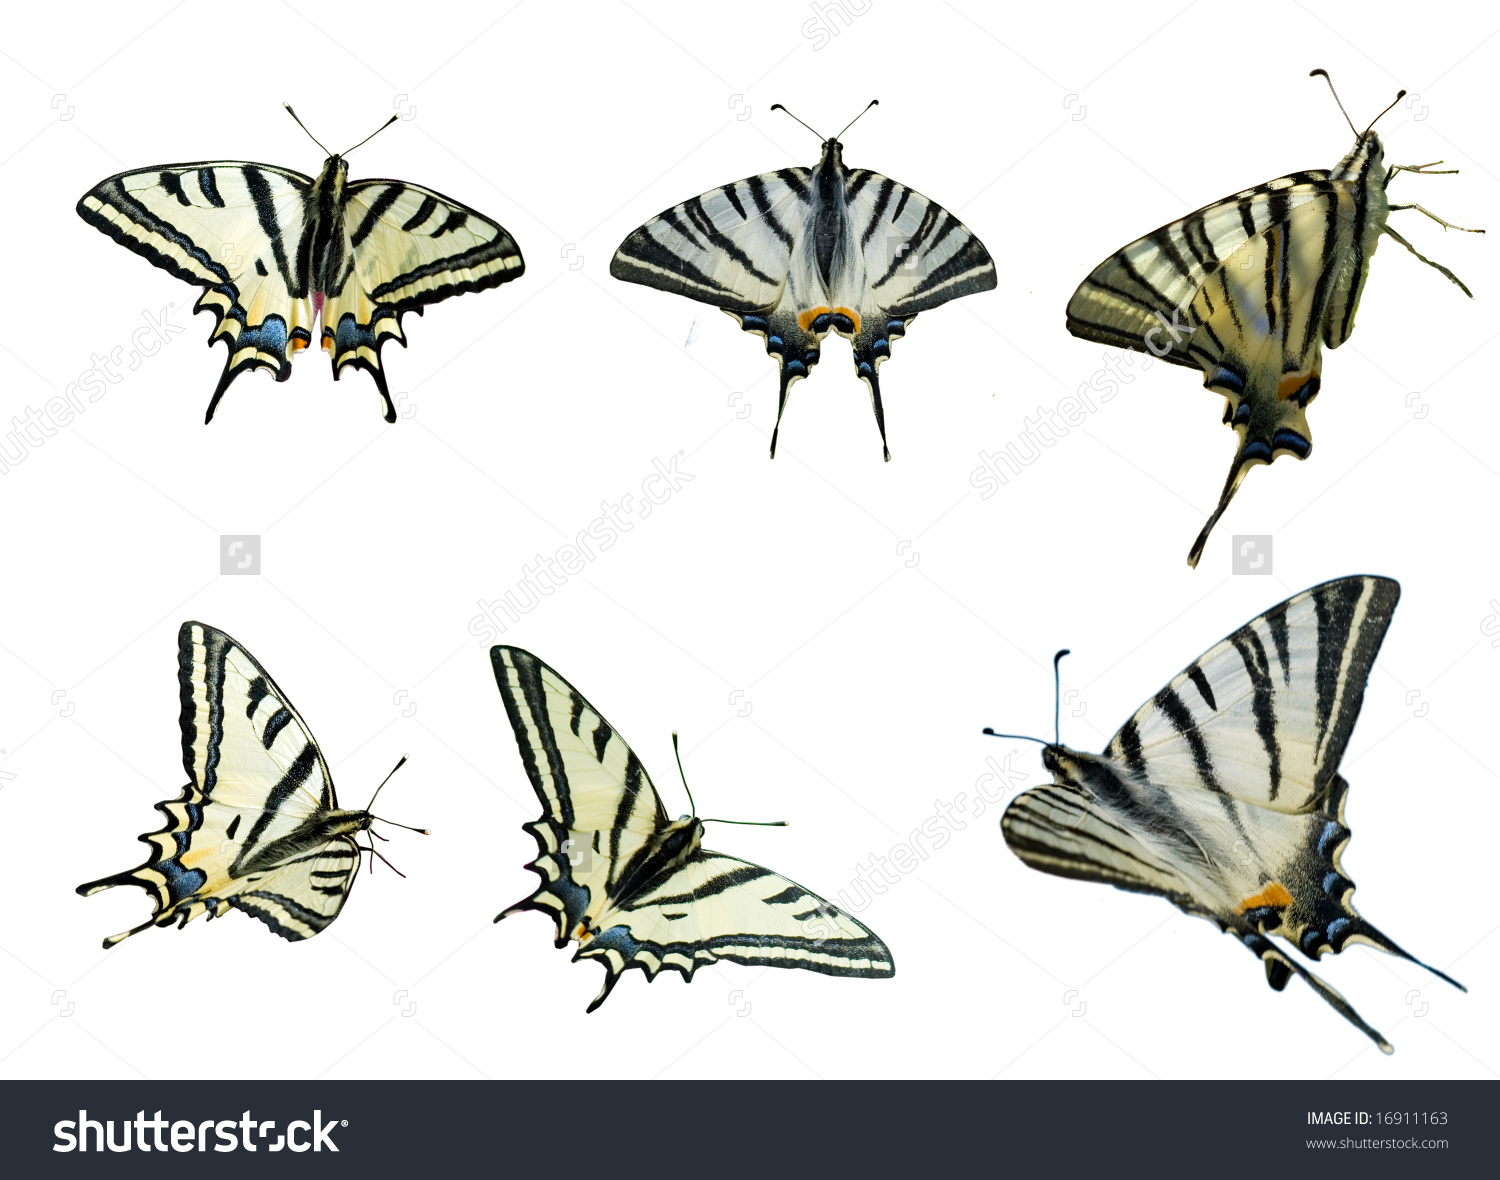 Two Species Of Swallowtails. Southern Swallowtail (Papilio.